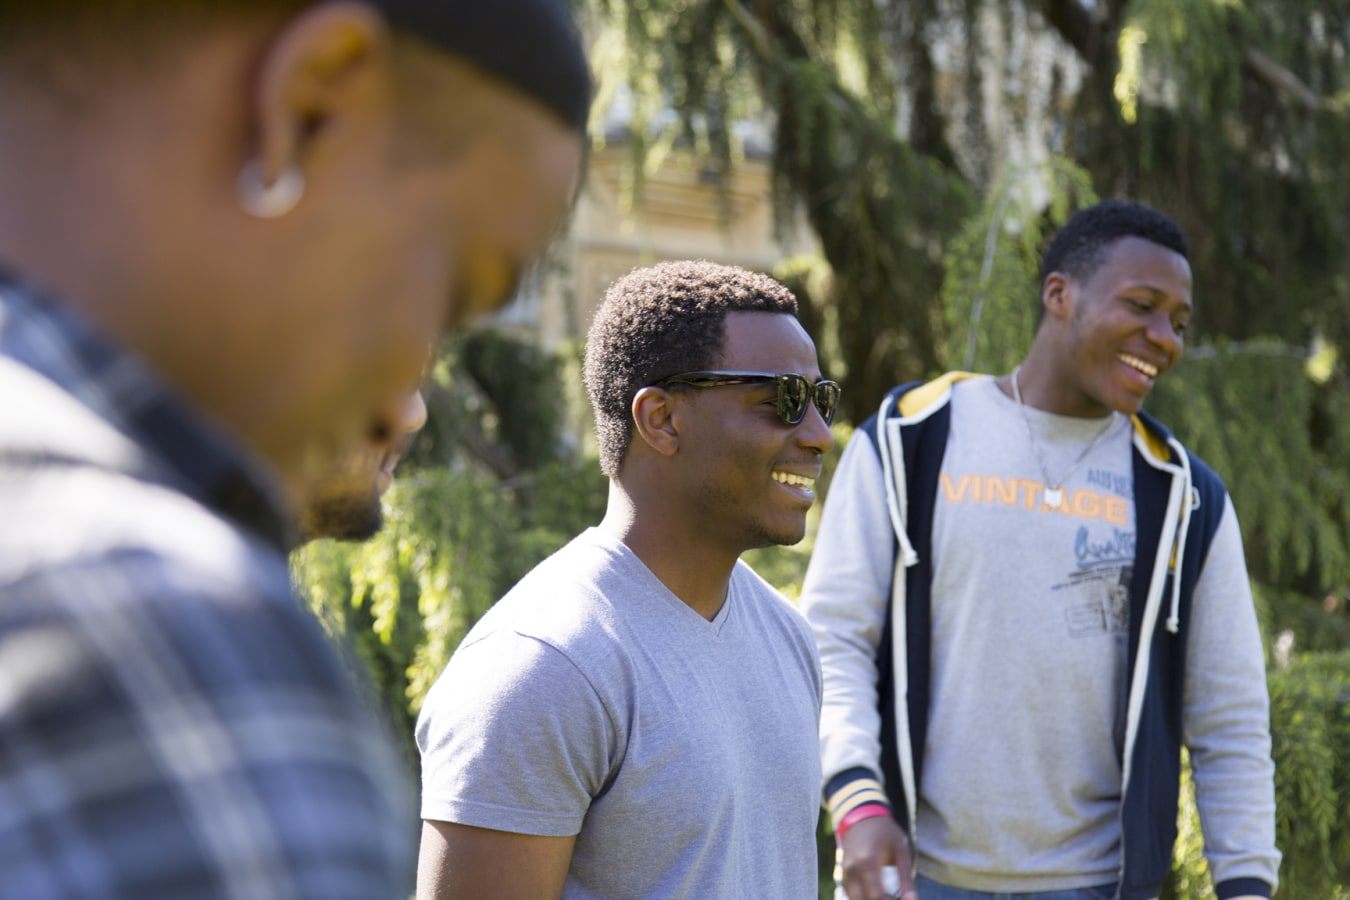 Richmond University image of a man in sunglasses smiling